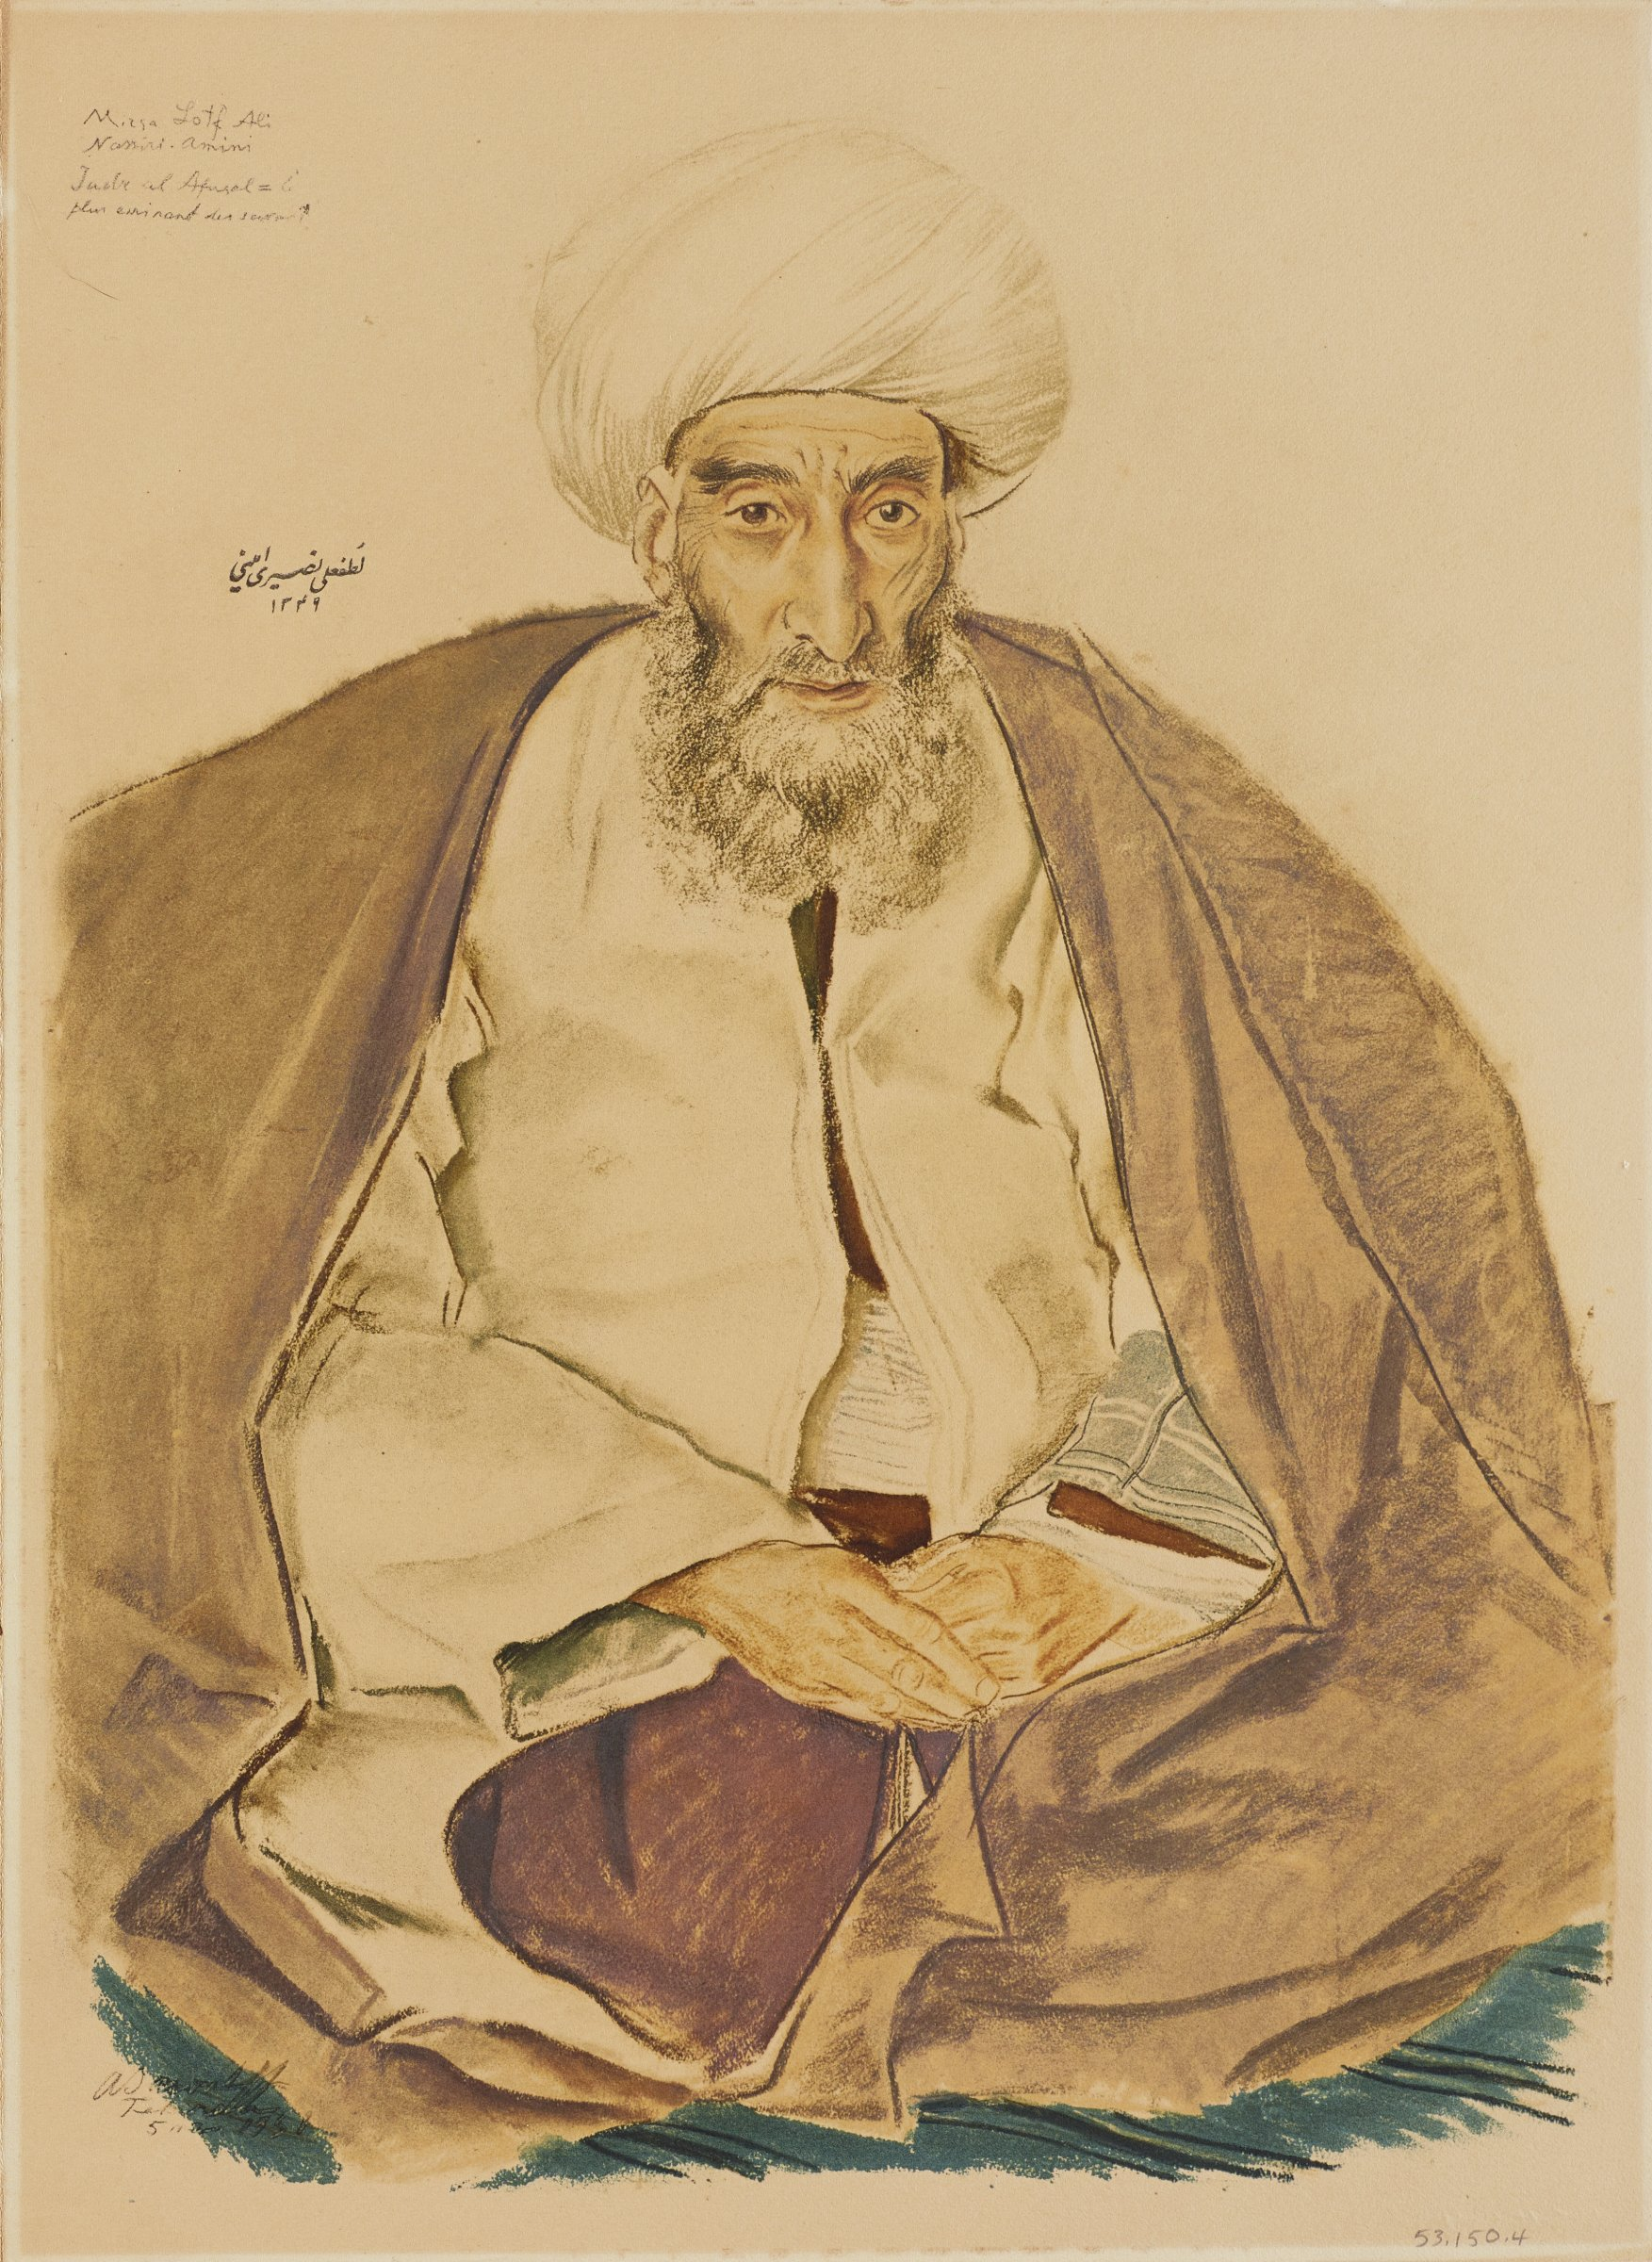 Full length portrait of male figure sitting with legs cross and fingers laced placed in his lap. He wears a white turban and white jacket with a large piece of brown fabric draped over his shoulders. This series is a product of Jacovleff's involvement in the Expédition Citroën Centre-Asie.